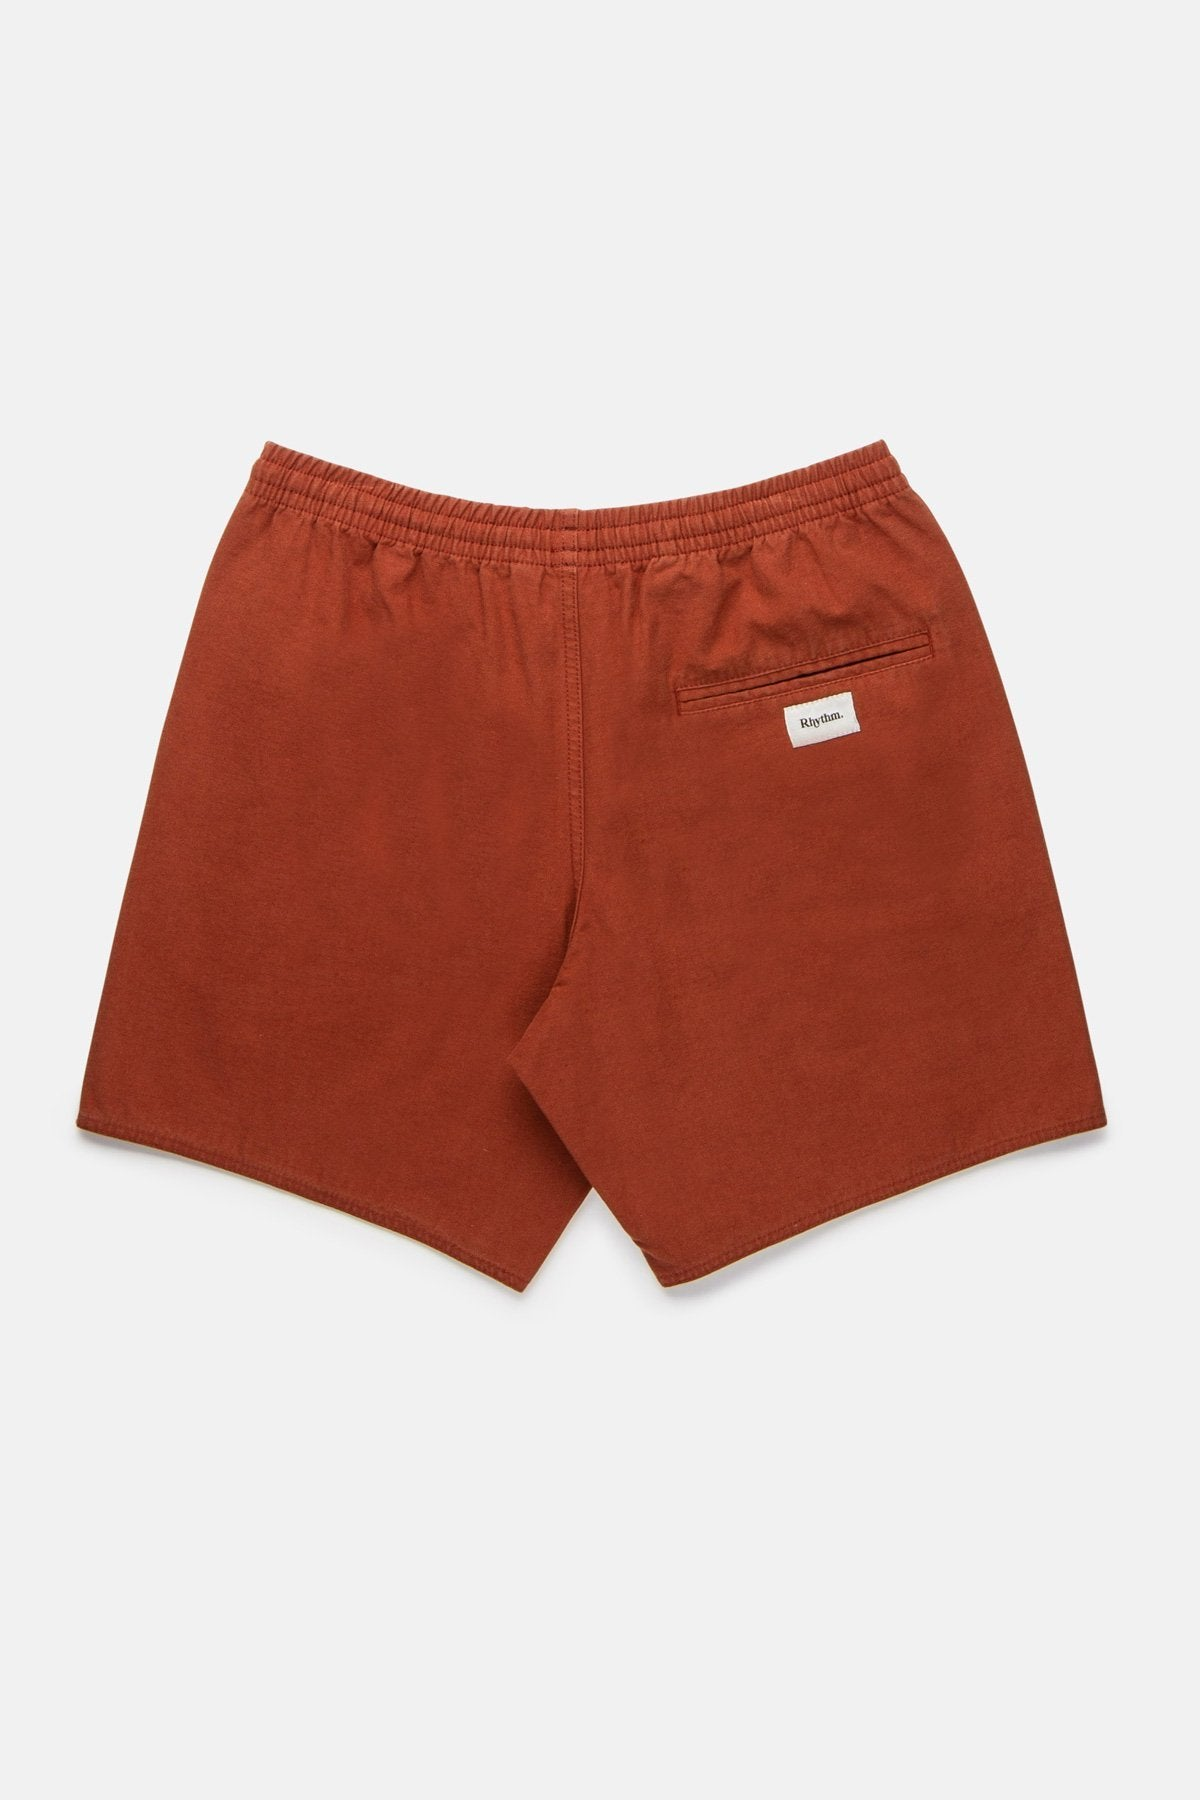 Box Jam Shorts- Clay